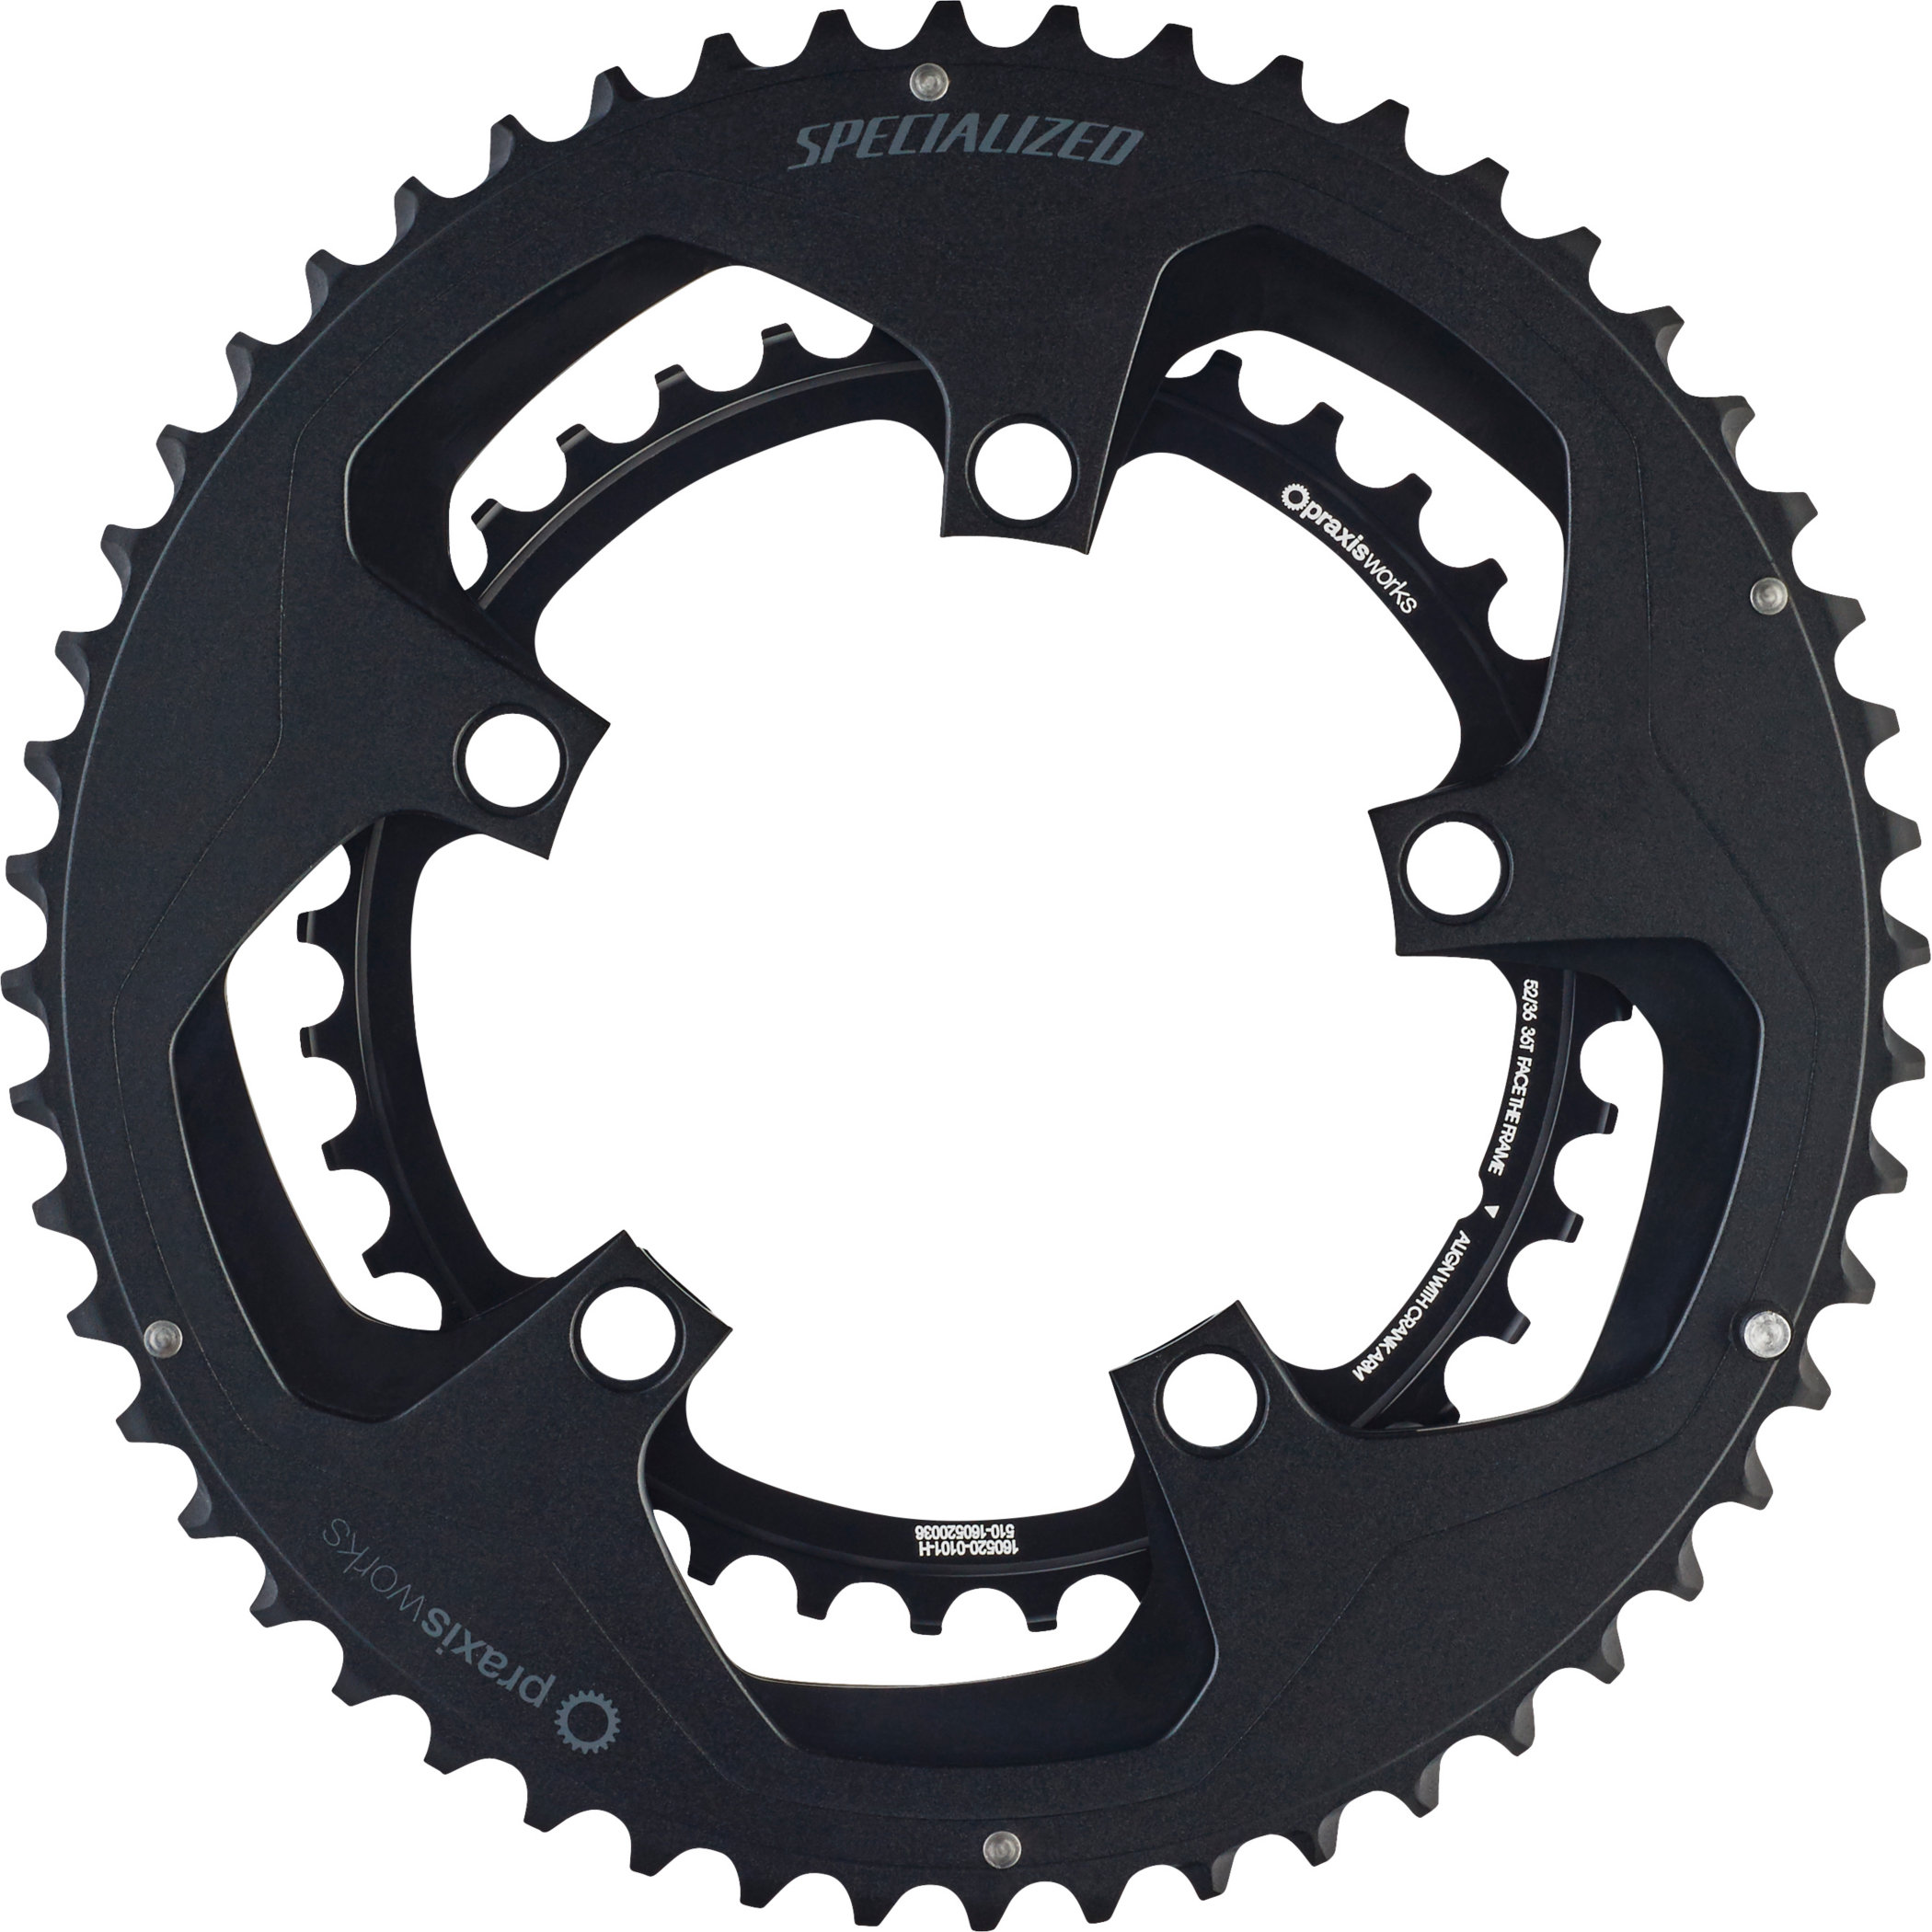 SPECIALIZED SPECIALIZED CHAINRING SET BLK 110X52/36T - SPECIALIZED SPECIALIZED CHAINRING SET BLK 110X52/36T